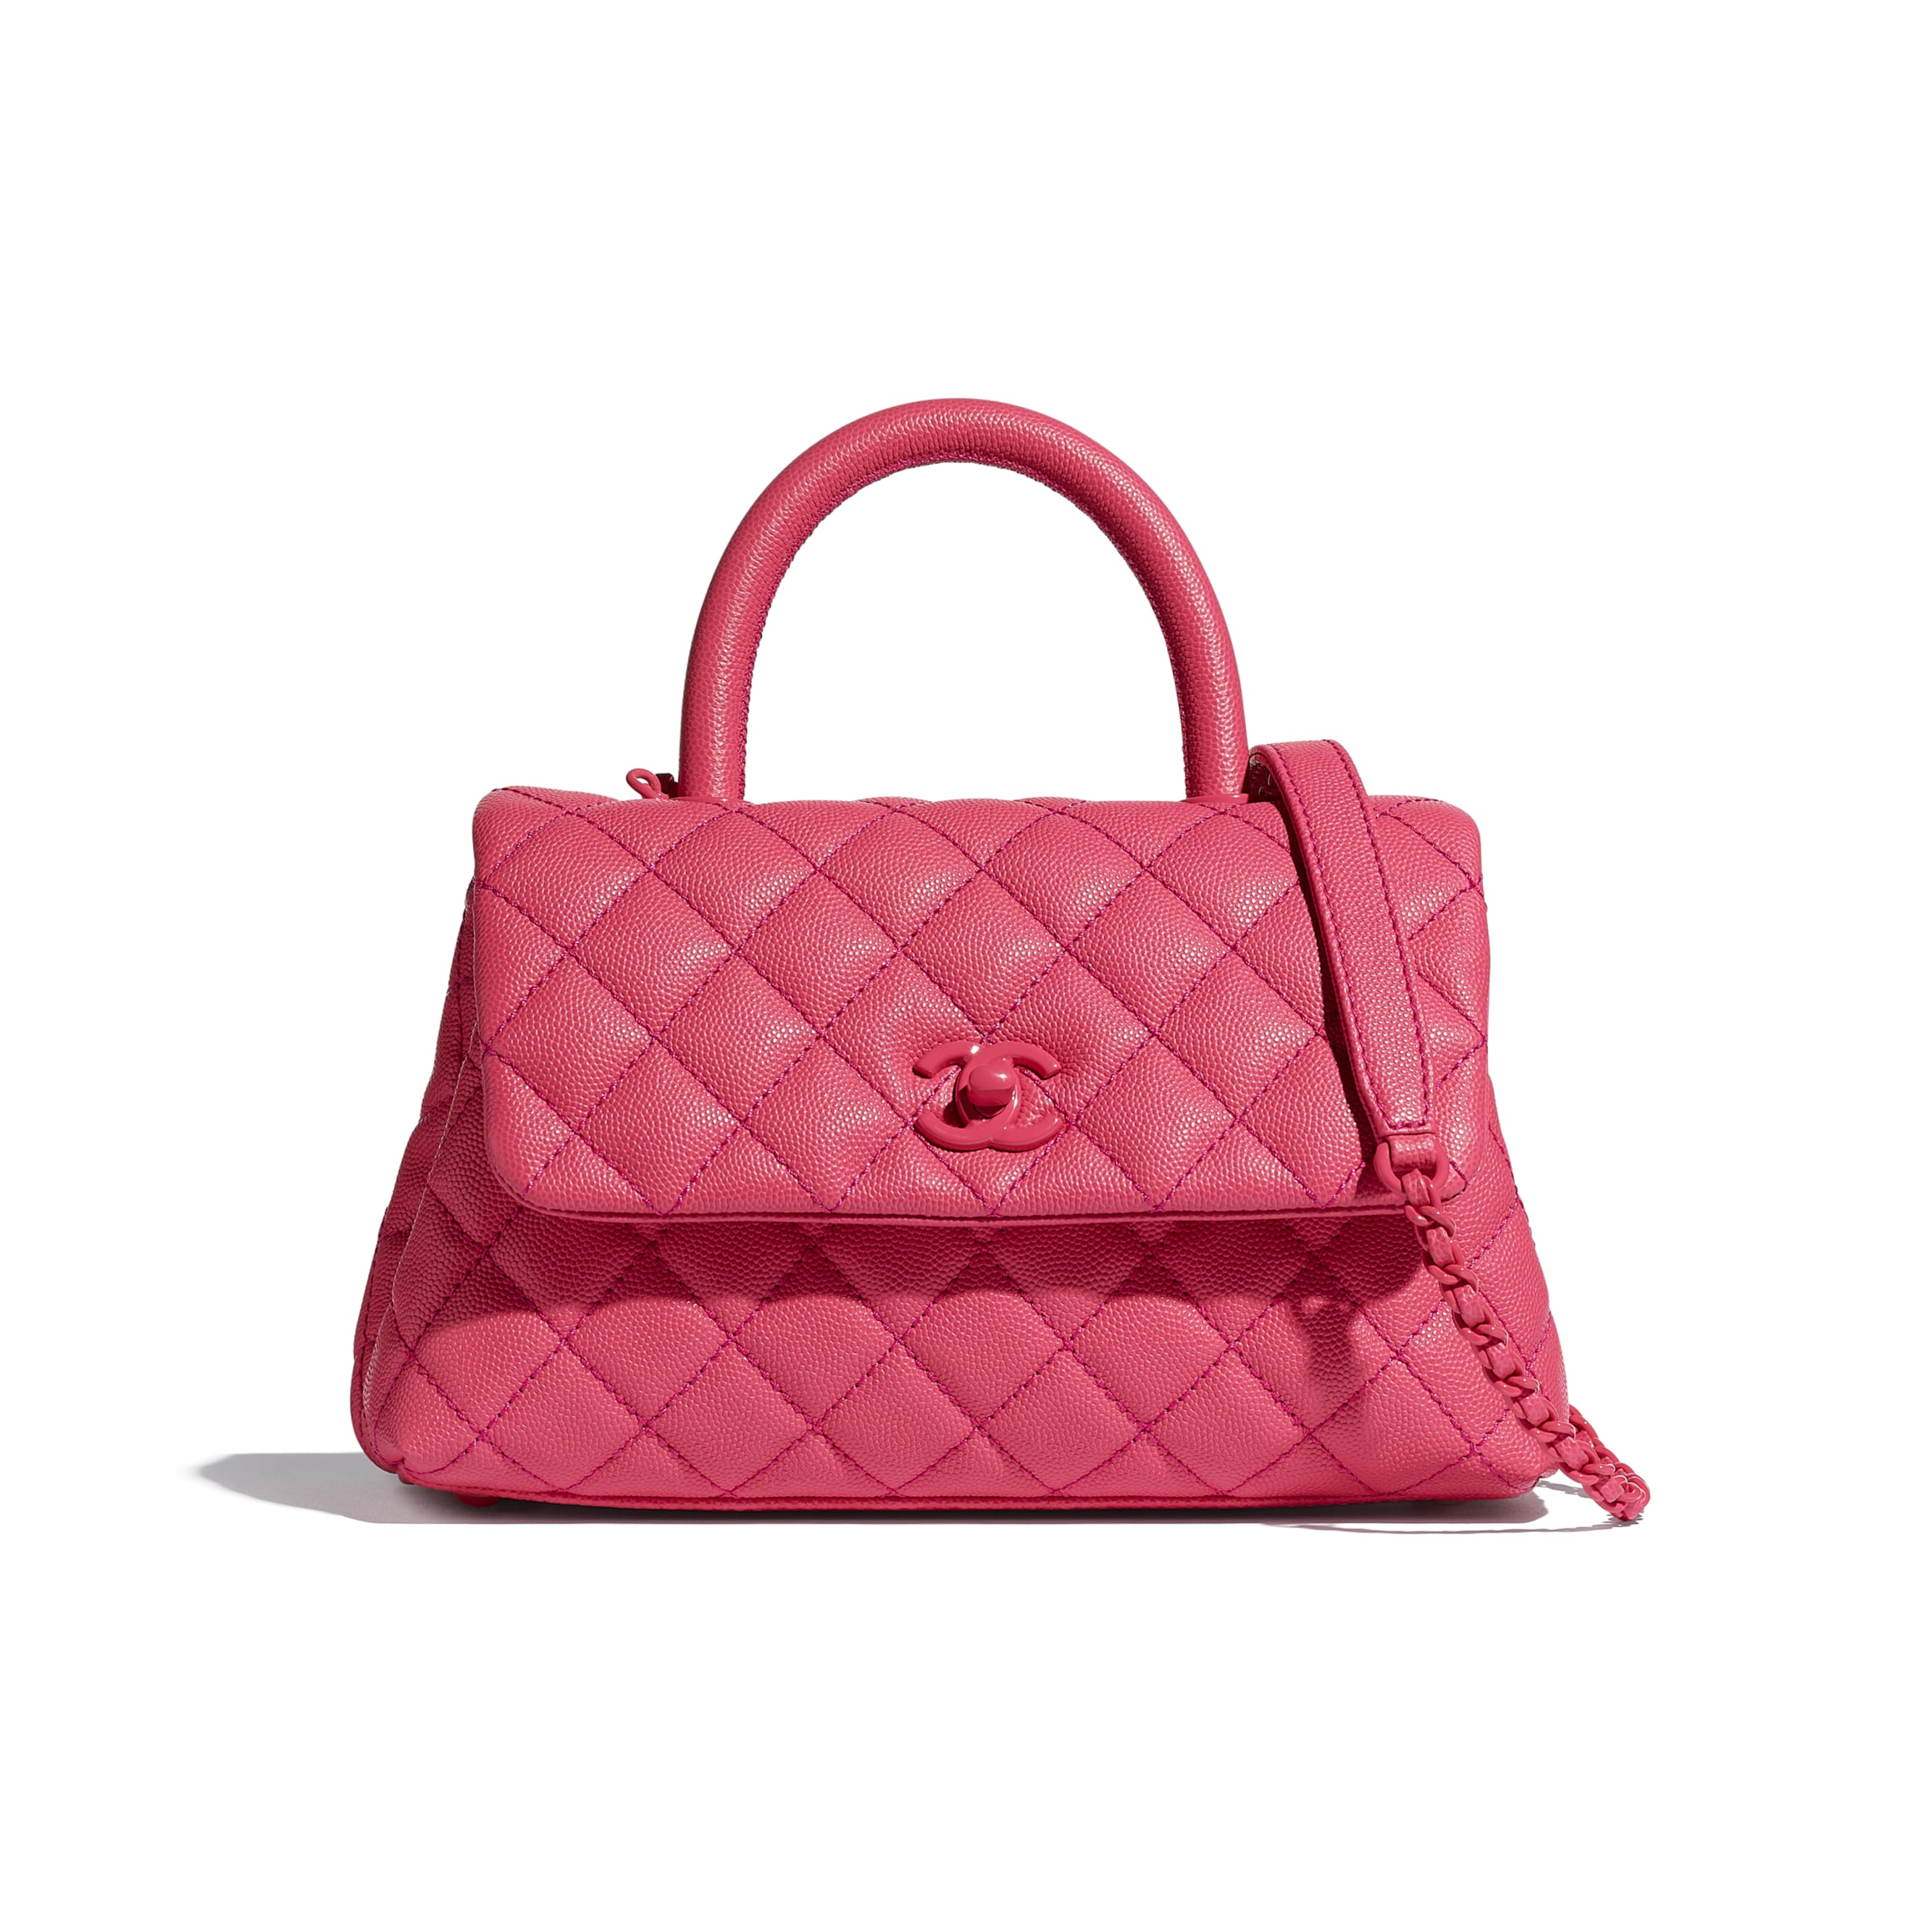 Small Flap Bag With Top Handle - Pink - Grained Calfskin & Lacquered Metal - CHANEL - Default view - see standard sized version